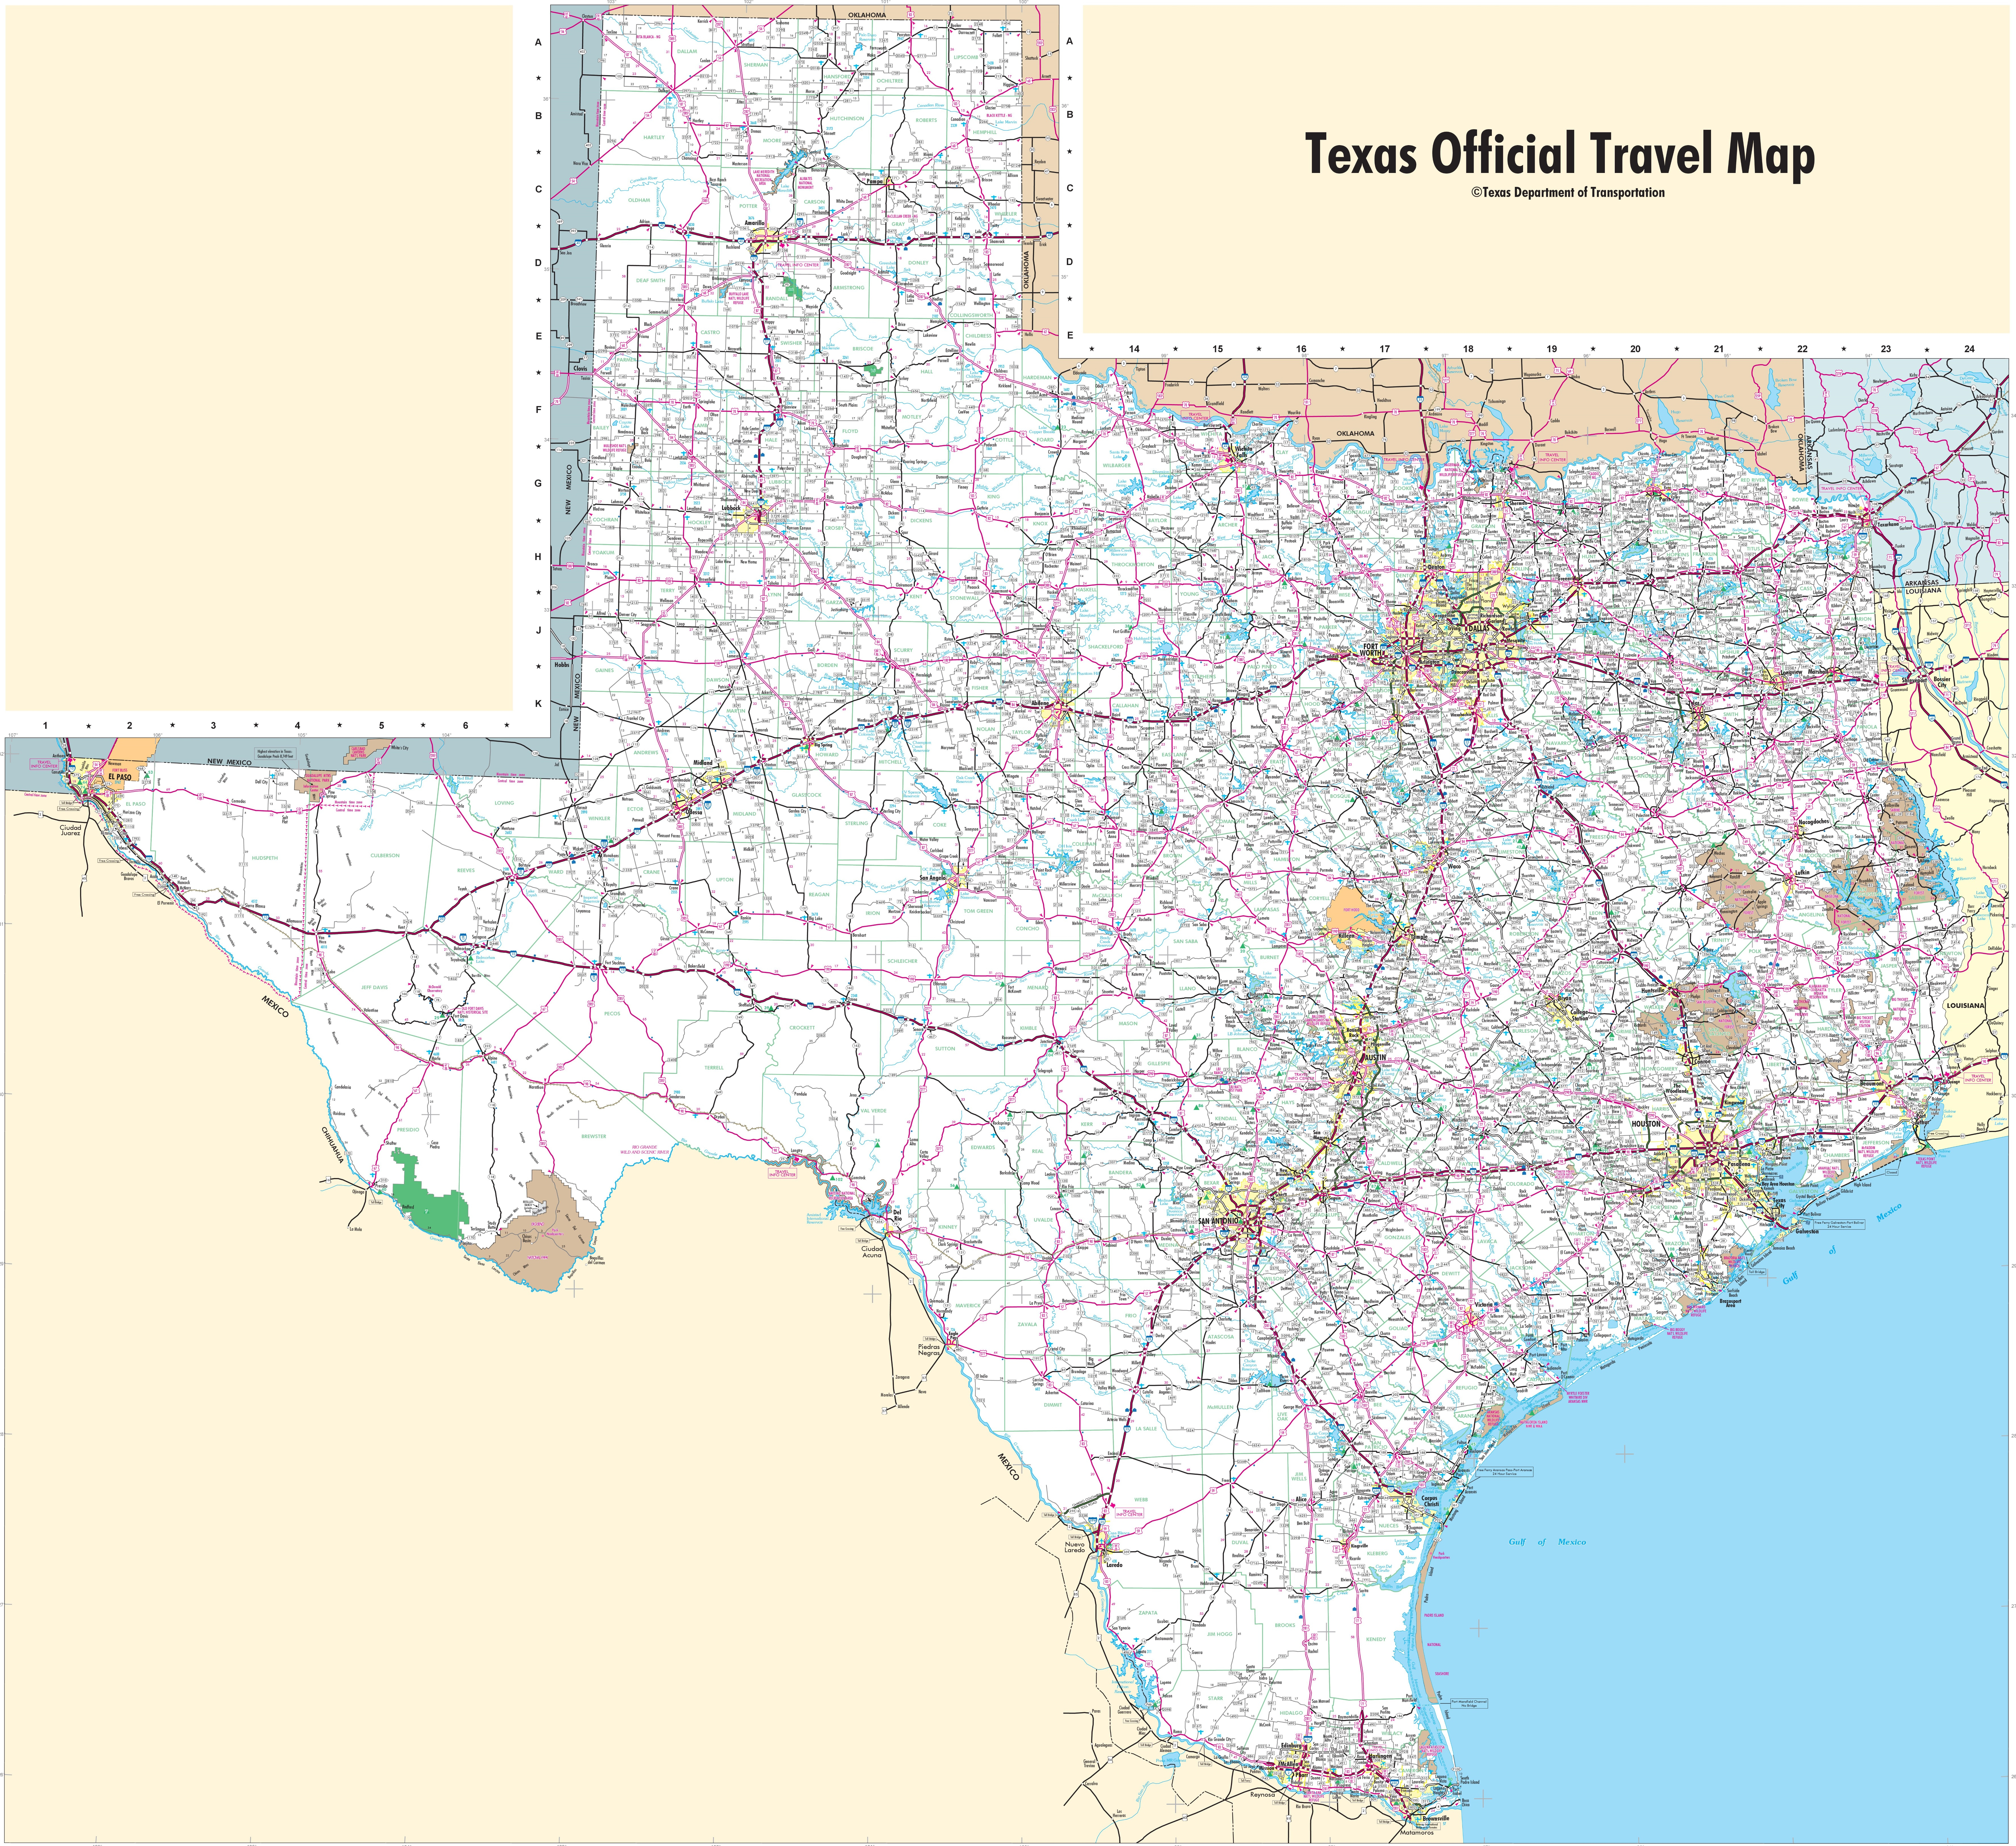 Large Detailed Map Of Texas With Cities And Towns - Detailed Road Map Of Texas